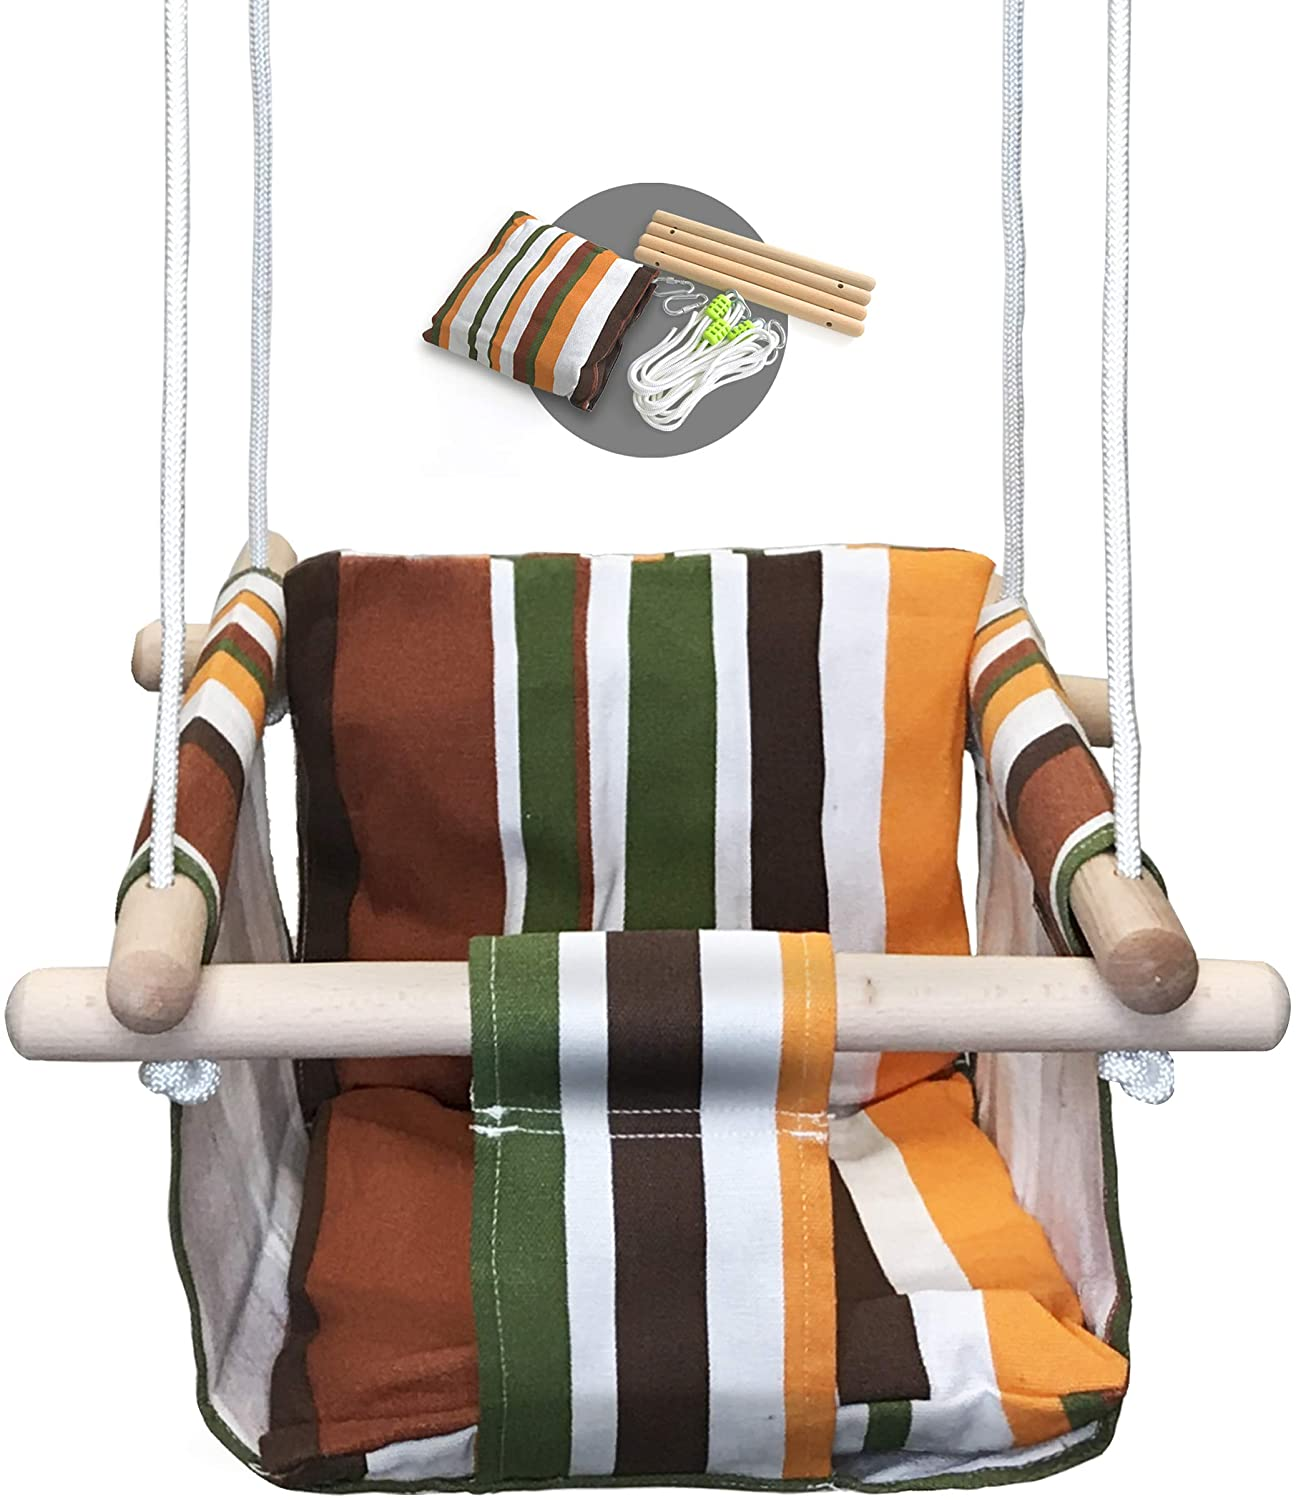 Baby Modern Hammock Swing | Swing For Babies With Warm Colors Canvas Design | Wood Frame And Polyester Fabric | Safe And Sturdy Set | Swing Seat Design For Small Toddlers | Hanging Baby Swing Chair